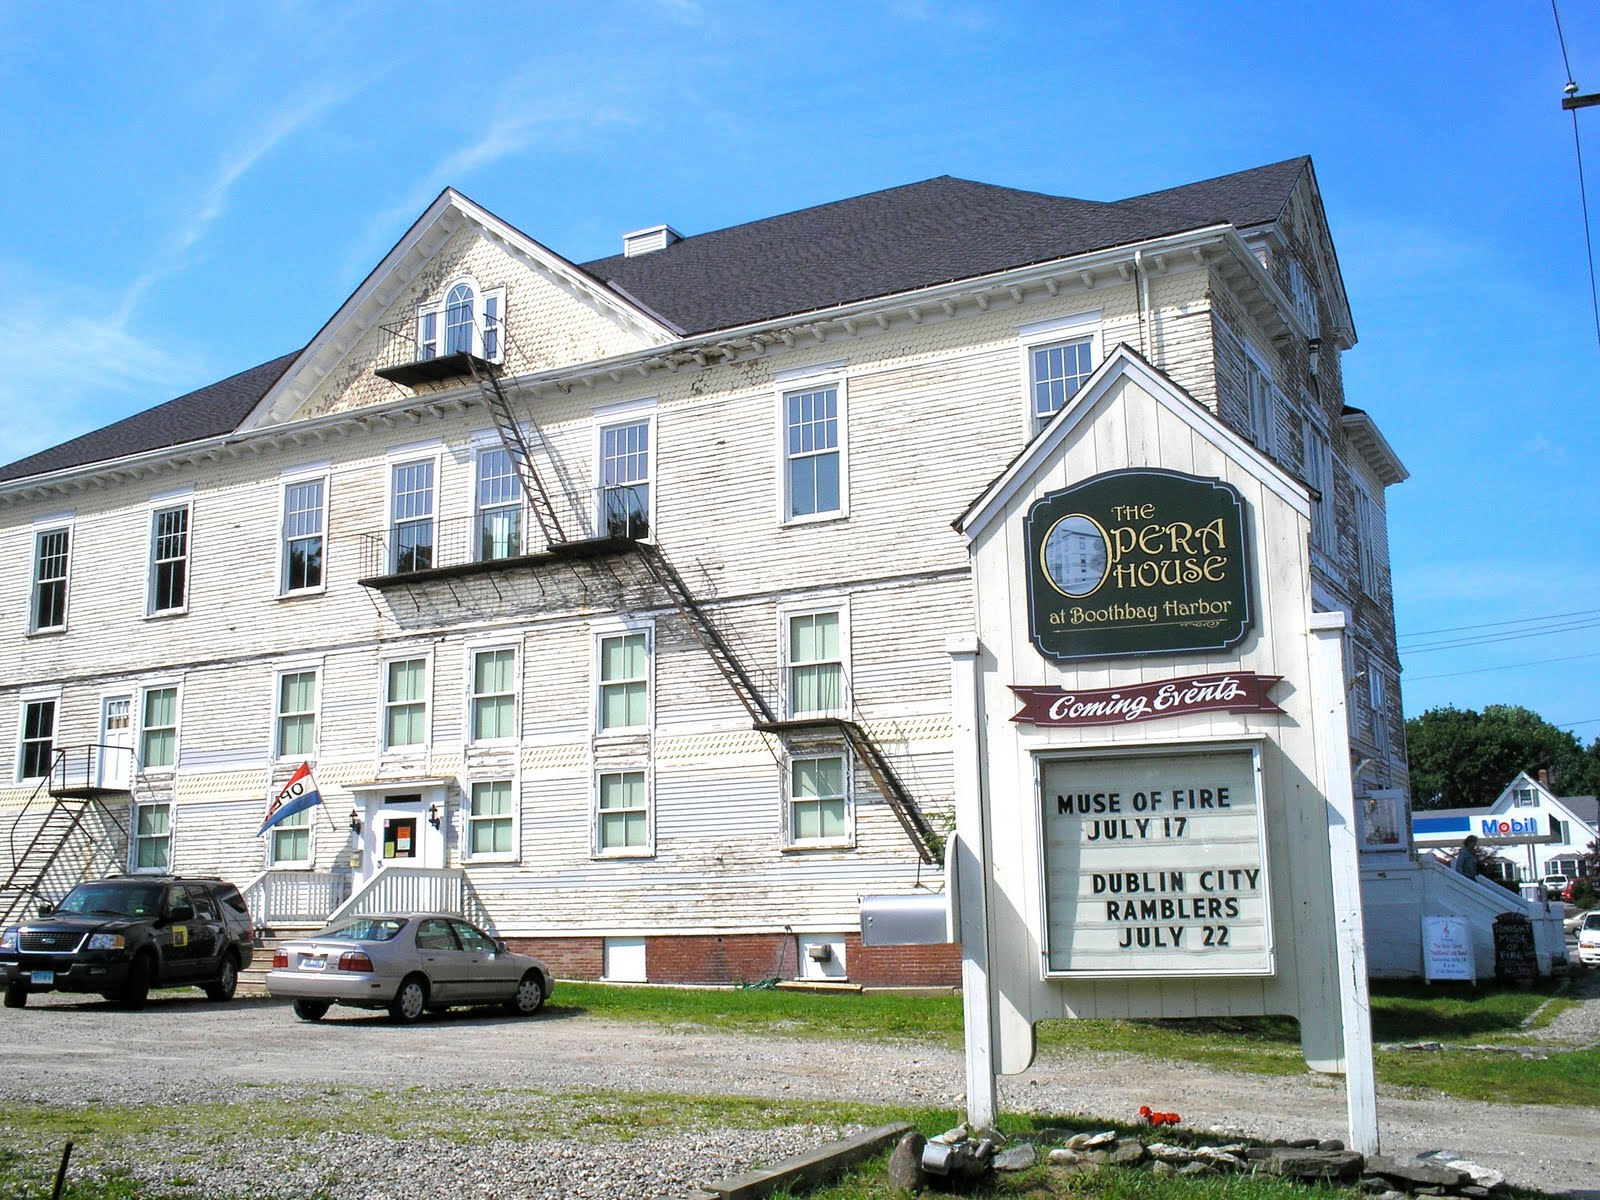 For generations the historic 1894 Opera House in Boothbay Harbor, Maine stage has played host to actors and musicians from around the state and around the globe.